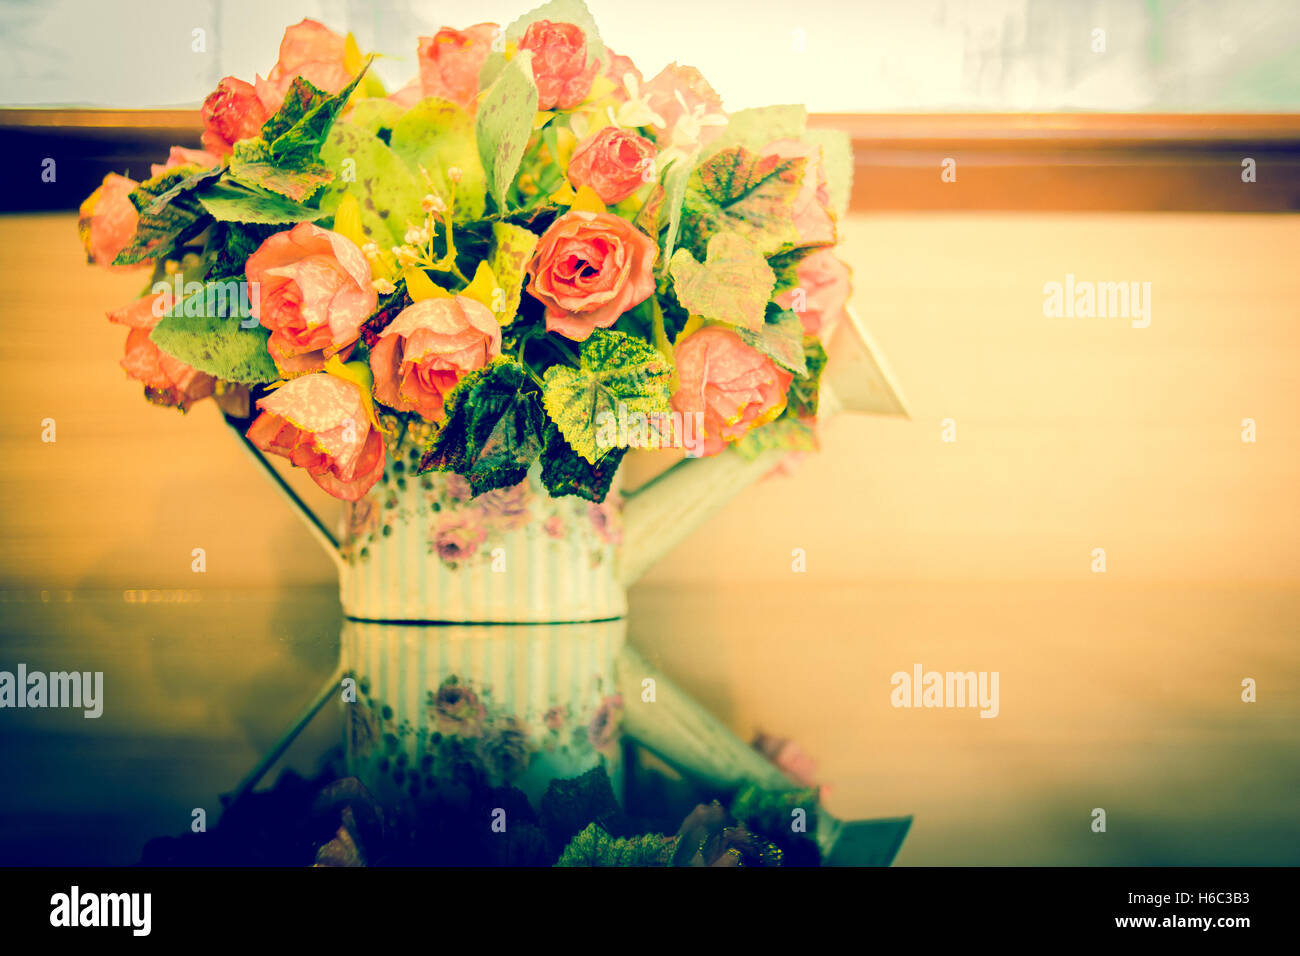 Beautiful flowers in vase on blue background.Vintage style. - Stock Image